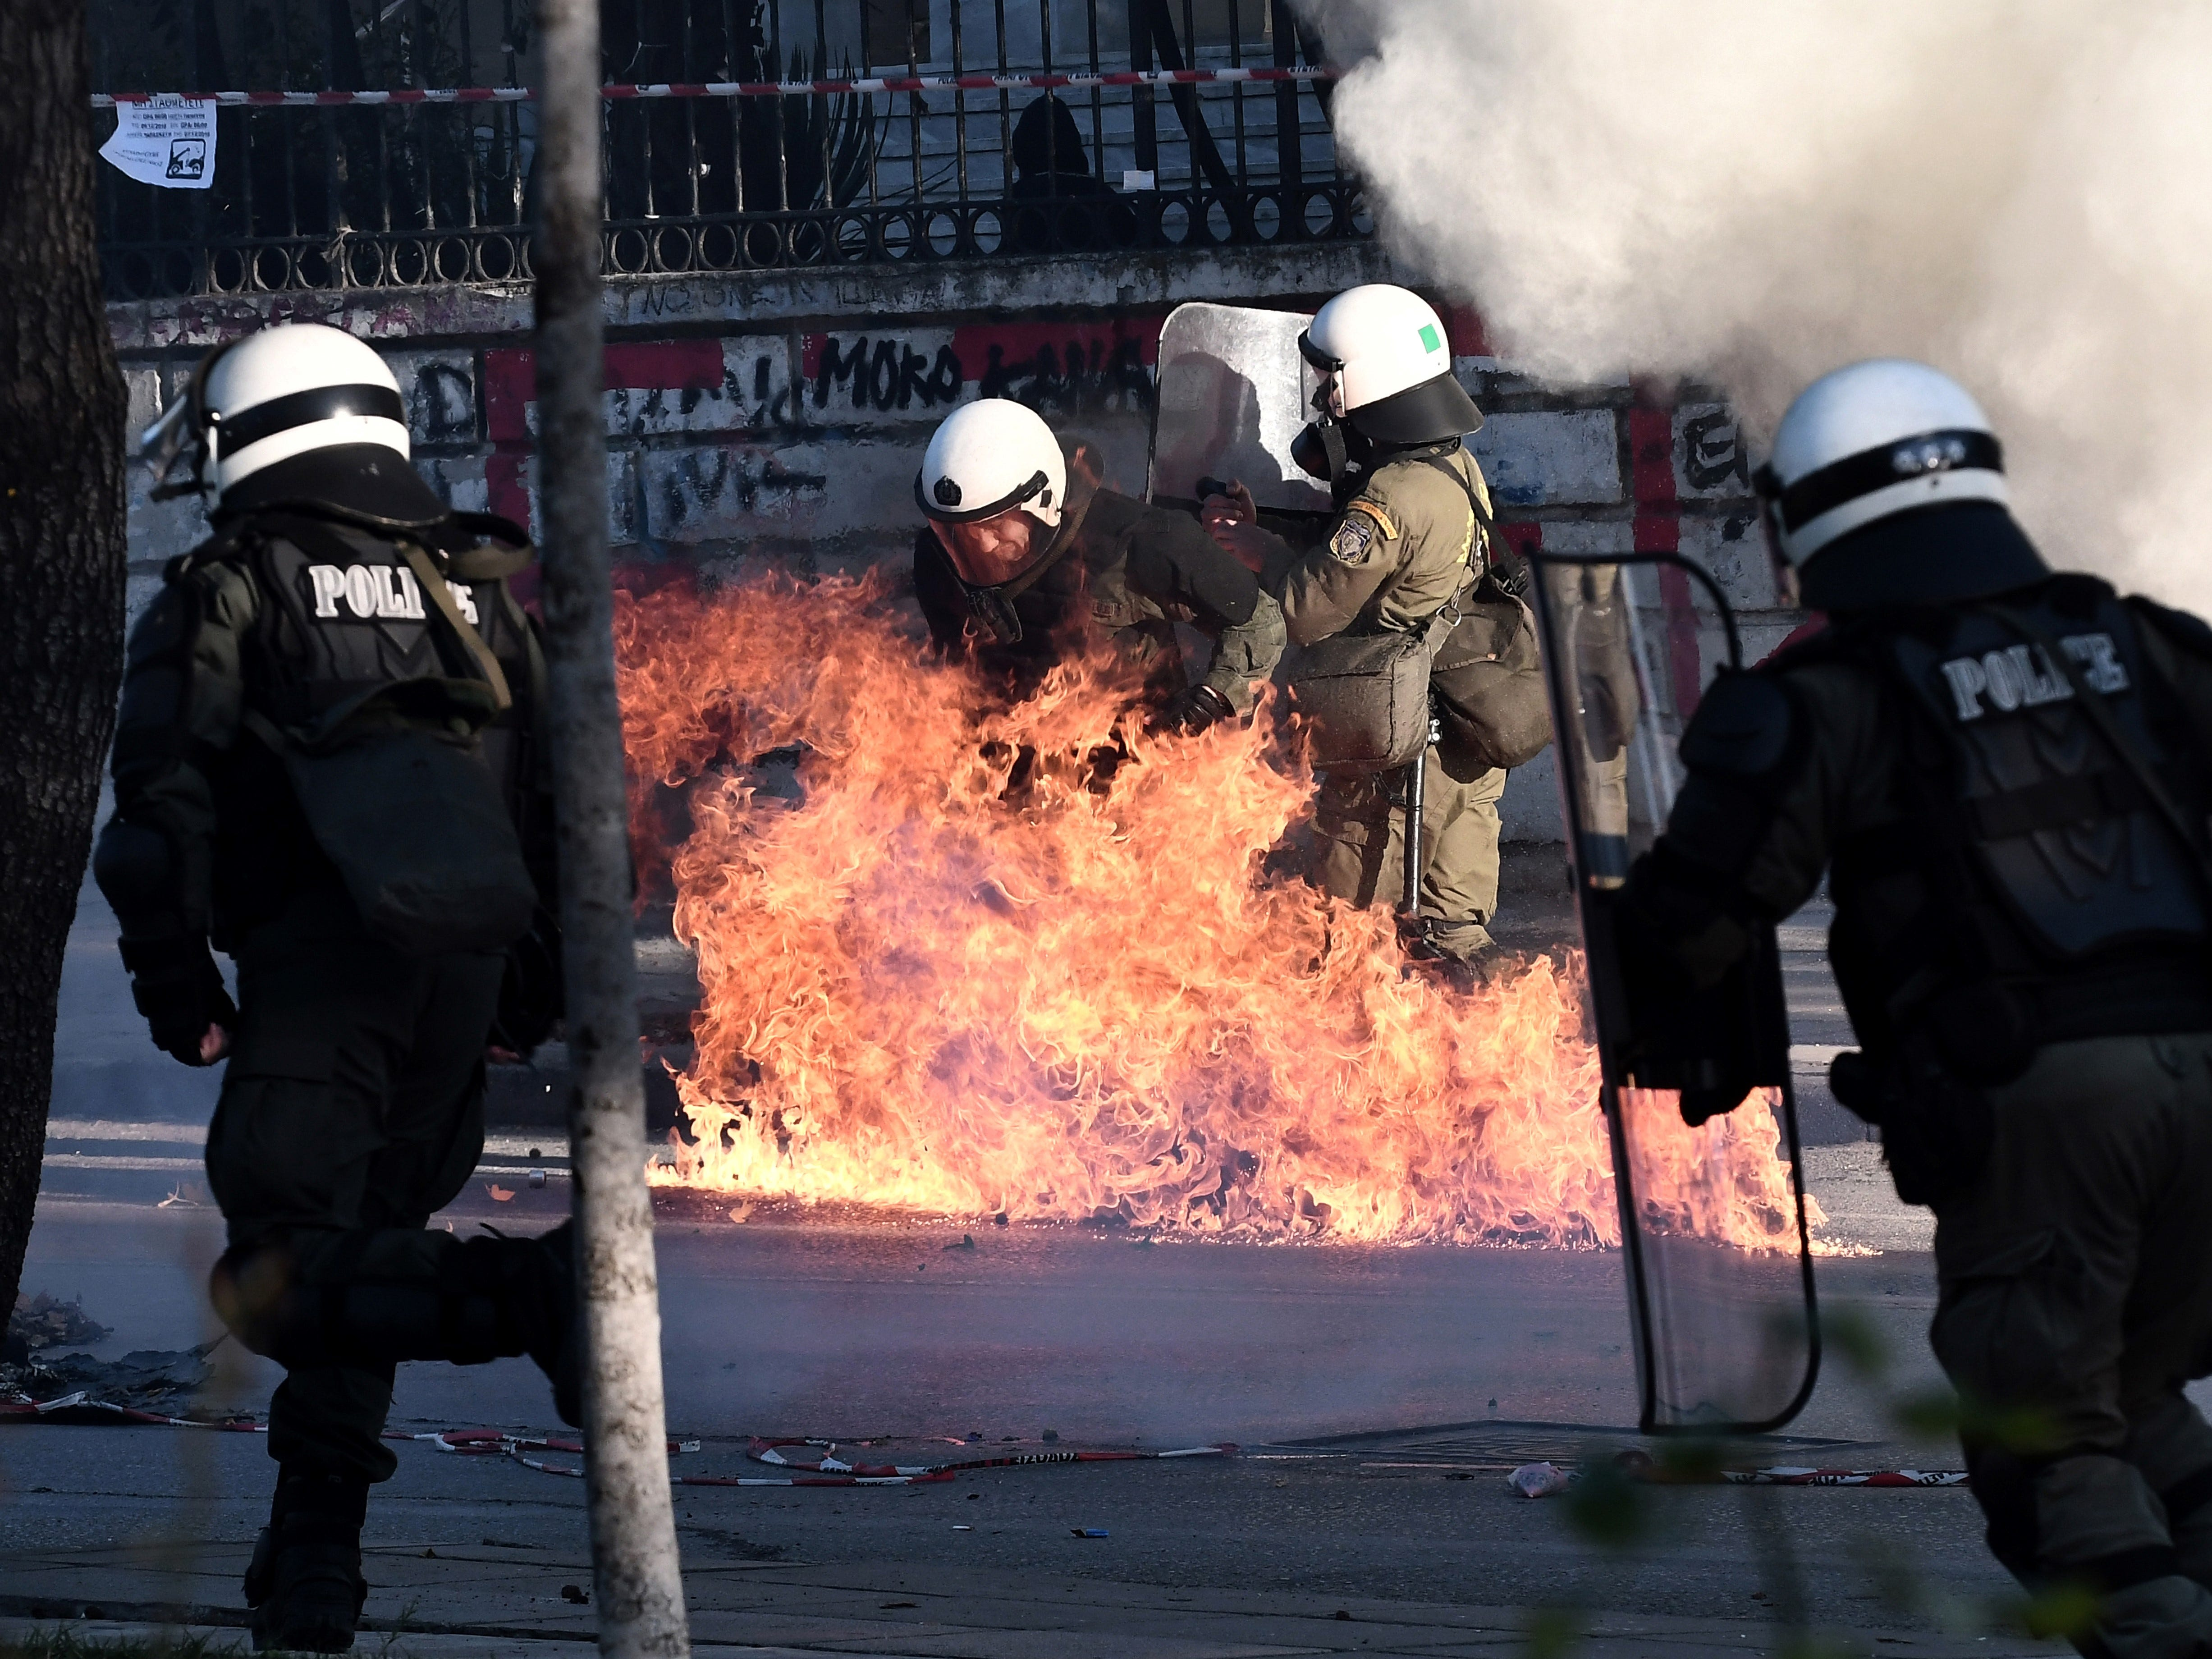 Gasoline bombs explode next to riot police officers during a demonstration in Athens on Dec. 6, 2018 to mark the 10th anniversary of the fatal shooting of a teenager which sparked major riots in Greece in 2008.